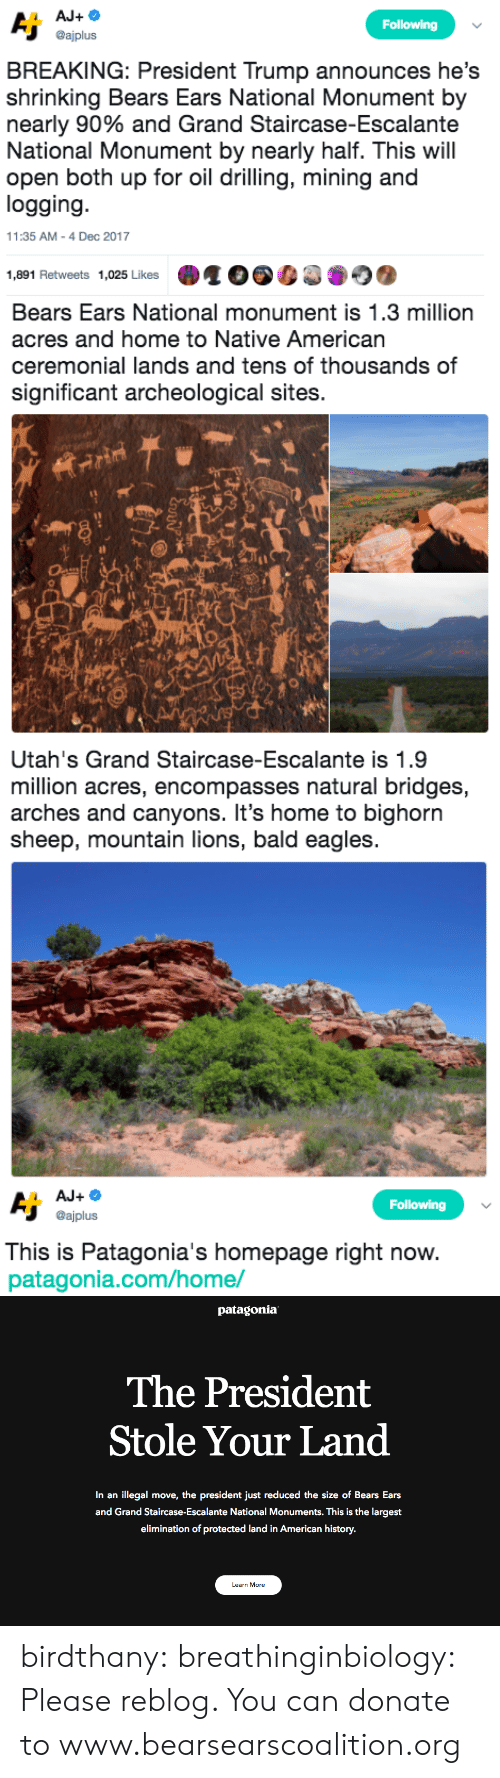 drilling: Following  @ajplus  BREAKING: President Trump announces he's  shrinking Bears Ears National Monument by  nearly 90% and Grand Staircase-Escalante  National Monument by nearly half. This will  open both up for oil drilling, mining and  logging  11:35 AM-4 Dec 2017  1,891 Retweets 1,025 Likes   Bears Ears National monument is 1.3 million  acres and home to Native American  ceremonial lands and tens of thousands of  significant archeological sites.  sh   Utah's Grand Staircase-Escalante is 1.9  million acres, encompasses natural bridges,  arches and canyons. It's home to bighorn  sheep, mountain lions, bald eagles   Following  @ajplus  This is Patagonia's homepage right now  patagonia.com/home/   patagonia  The President  Stole Your Land  In an illegal move, the president just reduced the size of Bears Ears  and Grand Staircase-Escalante National Monuments. This is the largest  elimination of protected land in American history.  Learn More birdthany: breathinginbiology: Please reblog.  You can donate to www.bearsearscoalition.org